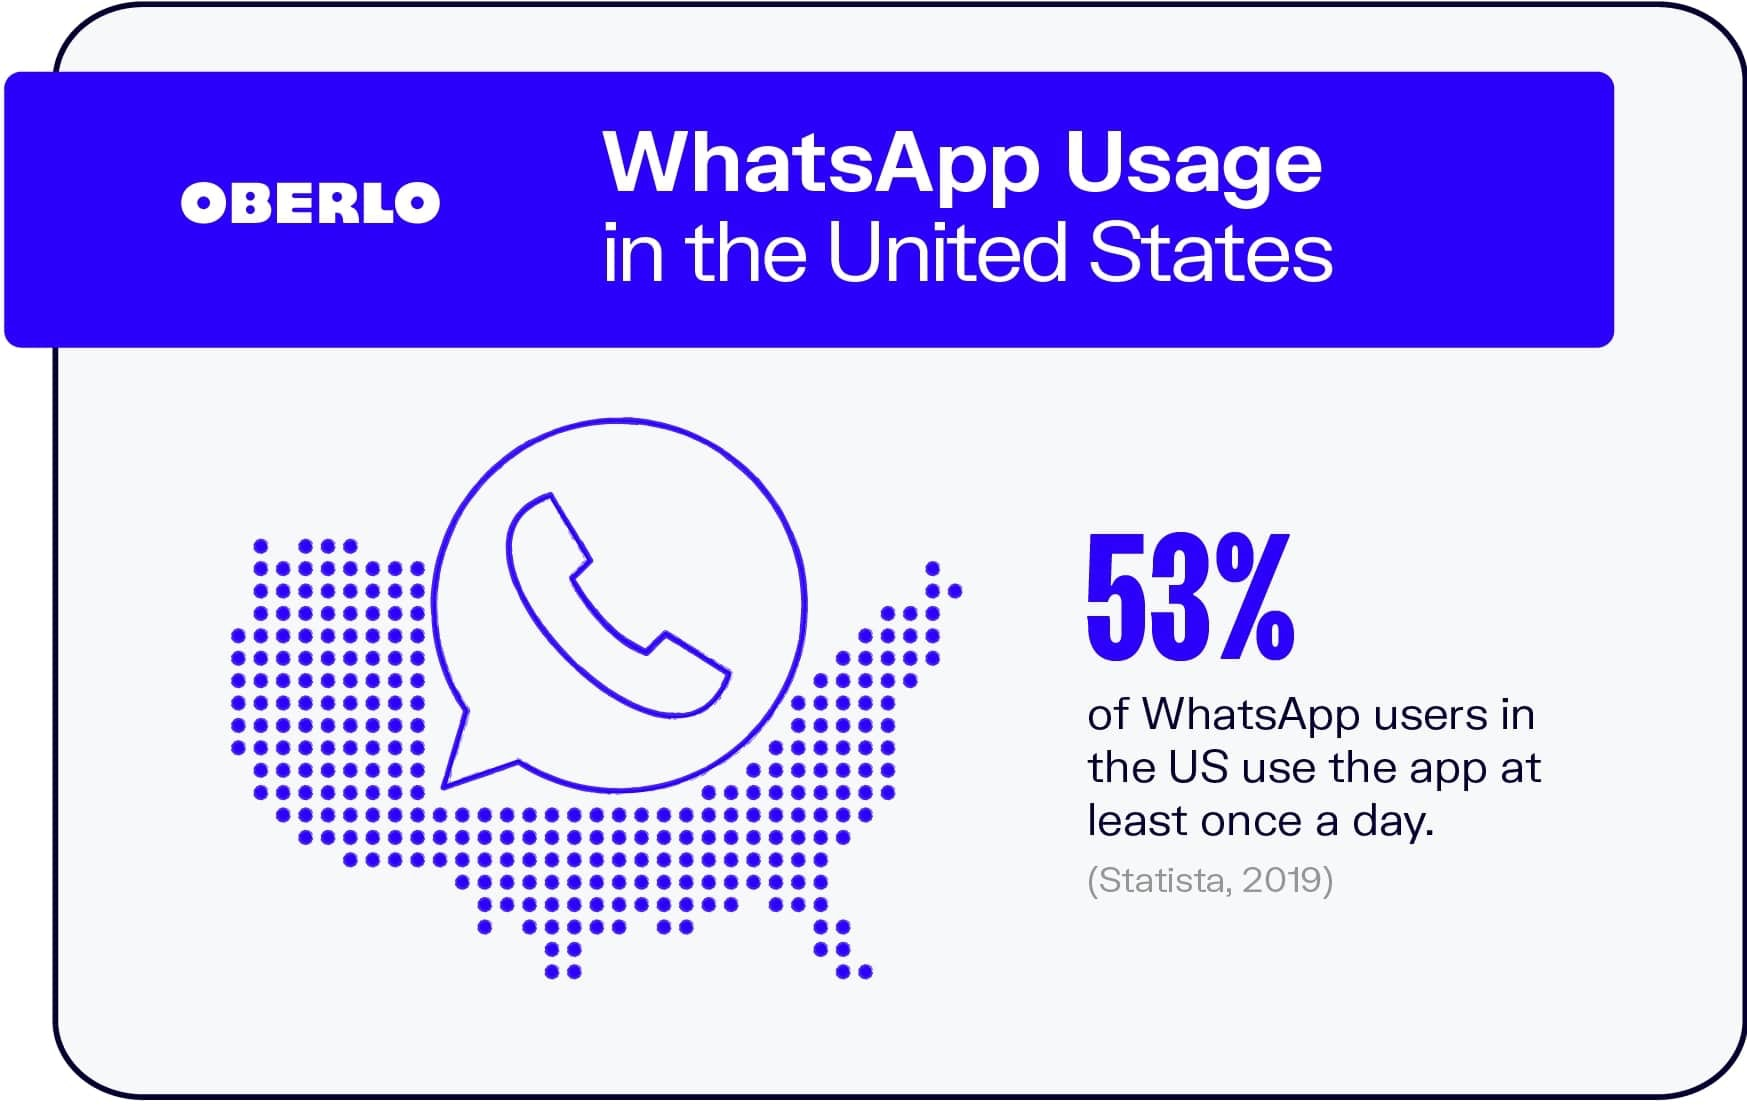 WhatsApp Usage in the United States